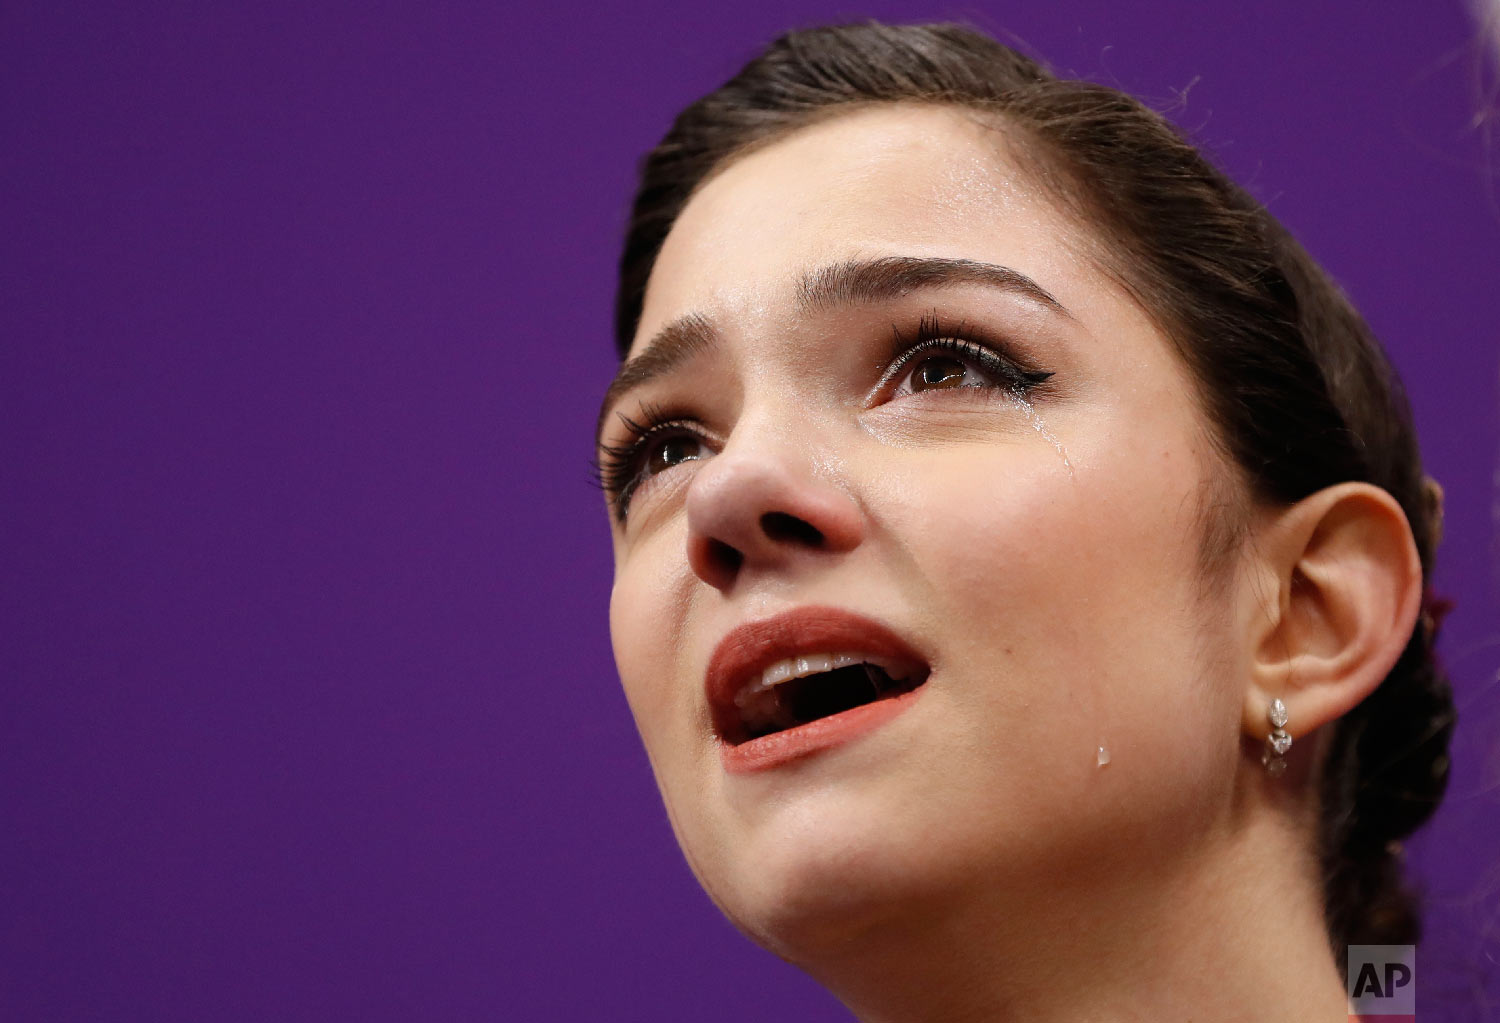 Evgenia Medvedeva of the Olympic Athletes of Russia reacts as her scores are posted following her performance in the women's free figure skating final in the Gangneung Ice Arena at the 2018 Winter Olympics in Gangneung, South Korea, Friday, Feb. 23, 2018. (AP Photo/Bernat Armangue)